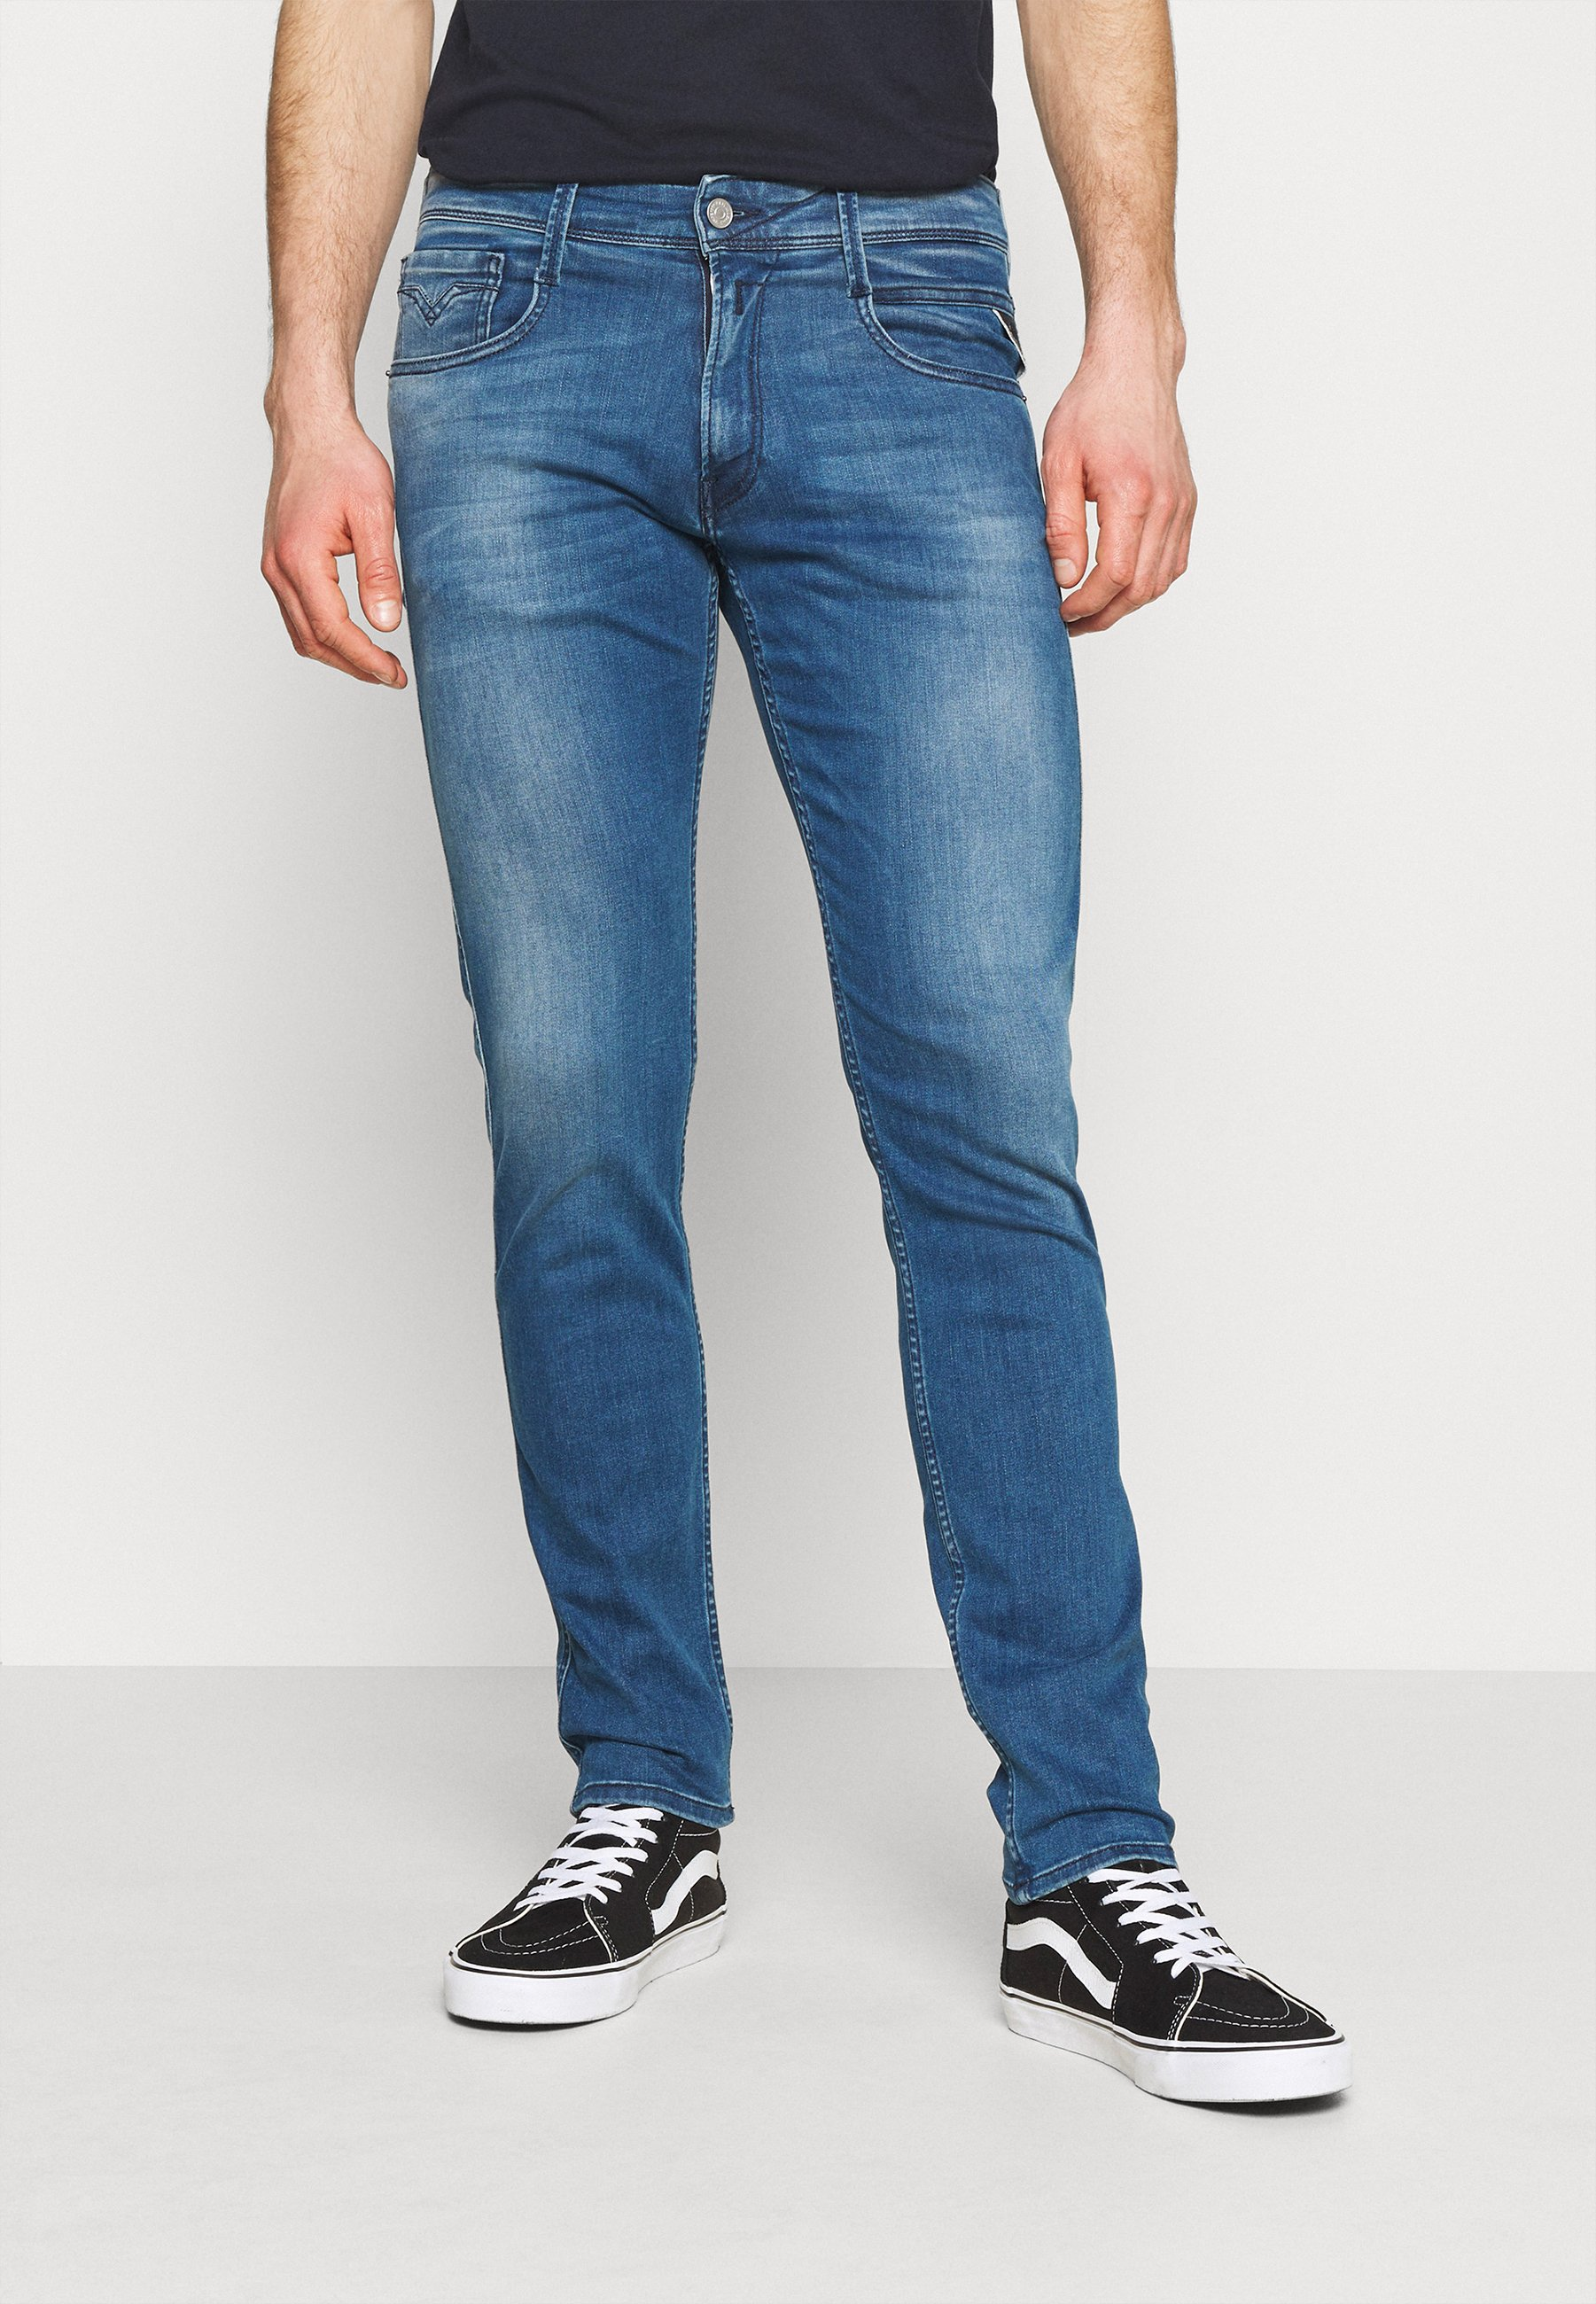 Uomo ANBASS - Jeans slim fit